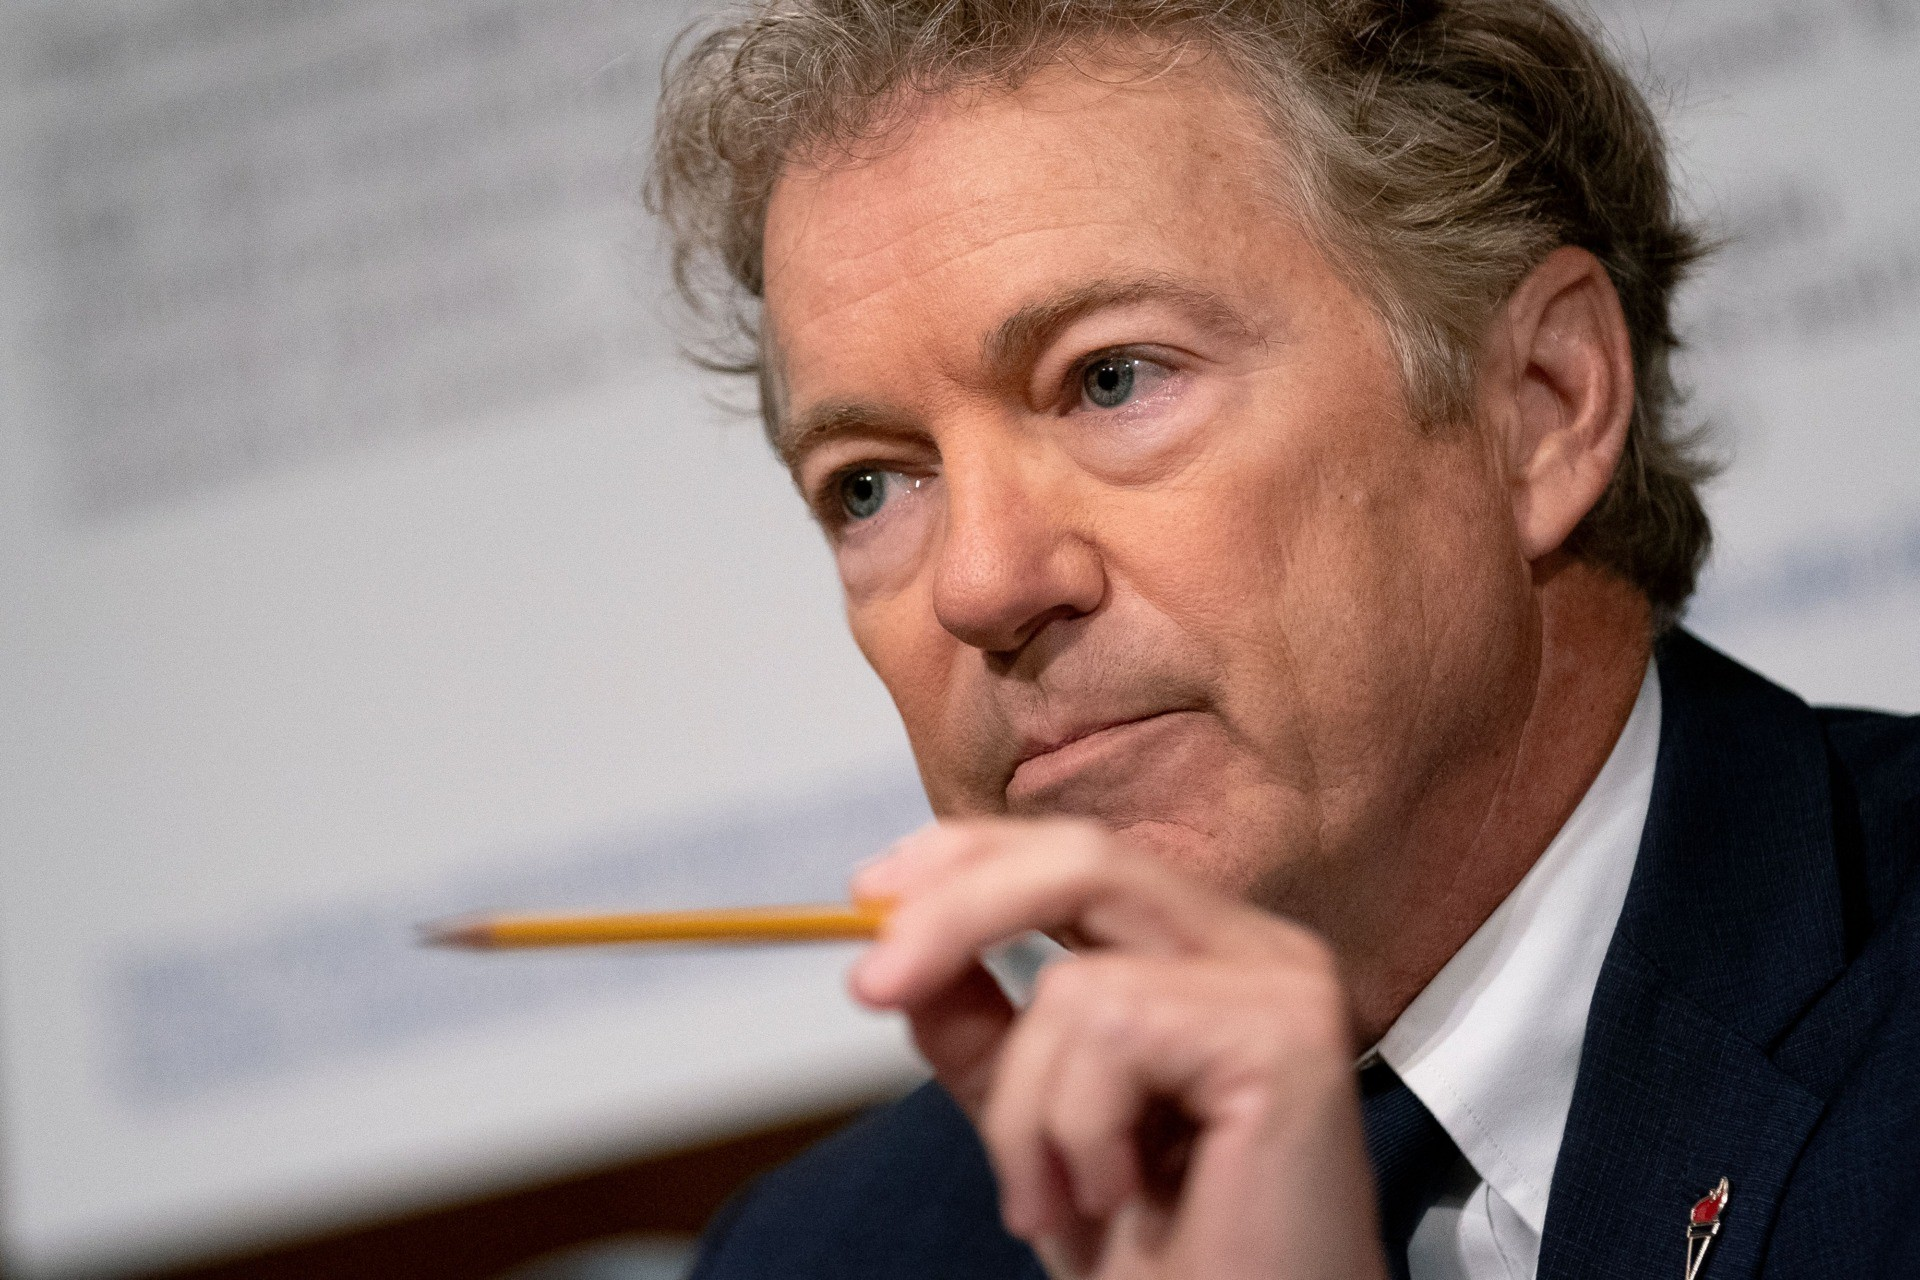 Senator Rand Paul (R-KY) speaks during the Senate Health, Education, Labor, and Pensions Committee hearing on Capitol Hill in Washington, DC, on July 20, 2021. (Photo by Stefani Reynolds / POOL / AFP) (Photo by STEFANI REYNOLDS/POOL/AFP via Getty Images)